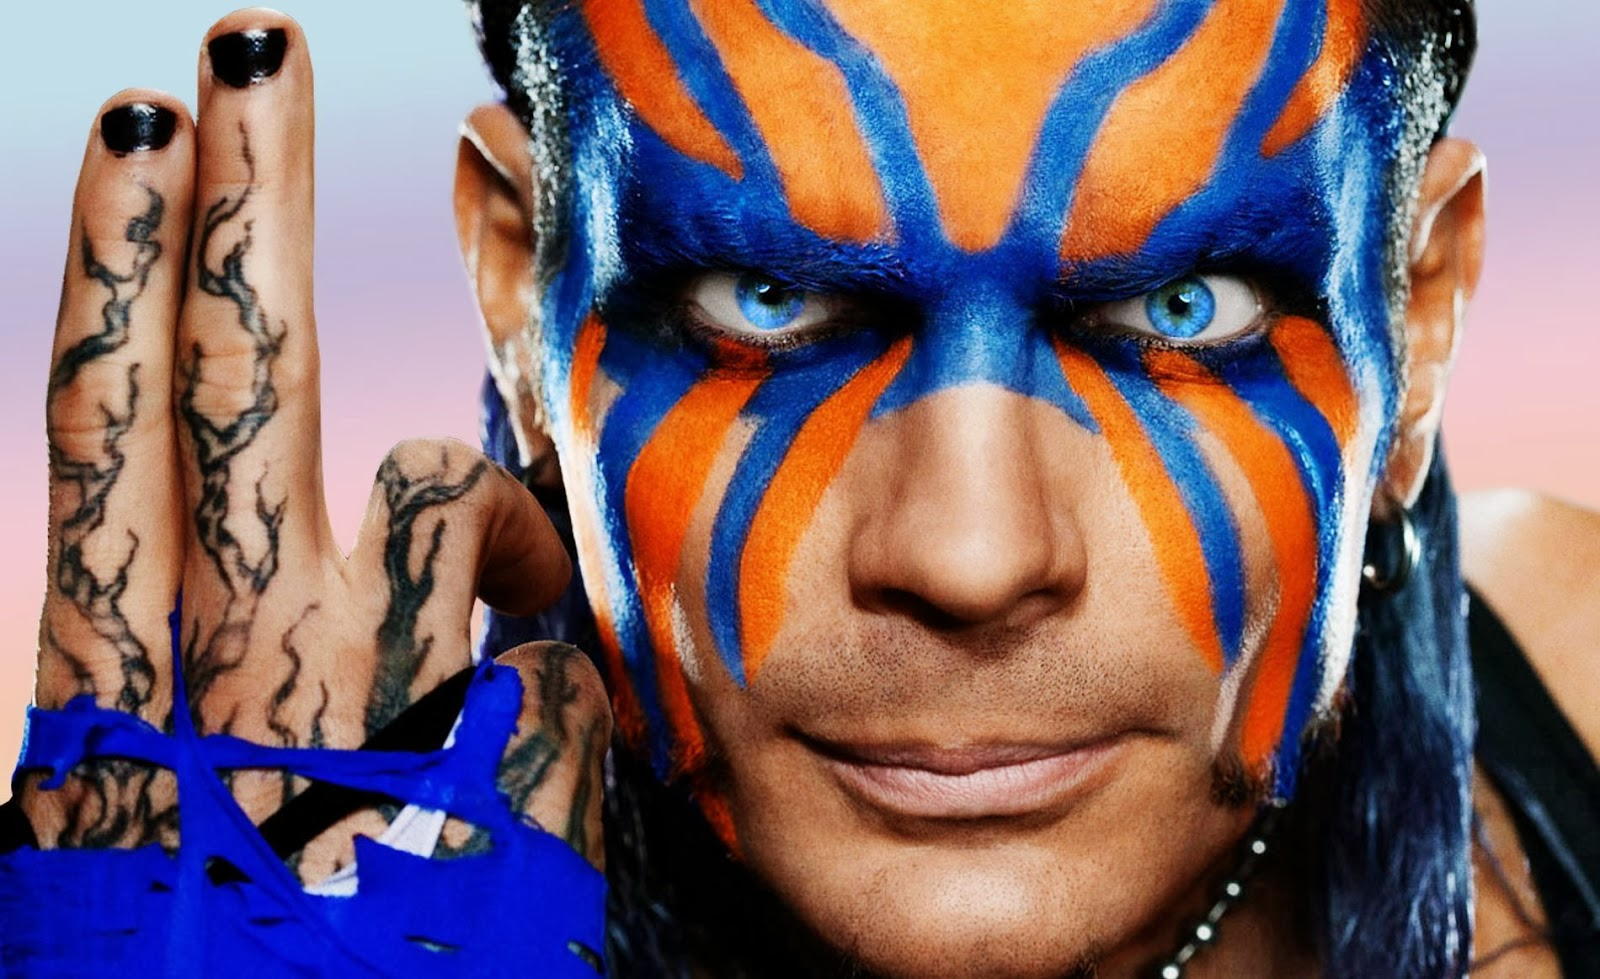 wwe hd wallpaper free download: jeff hardy hd wallpapers free download